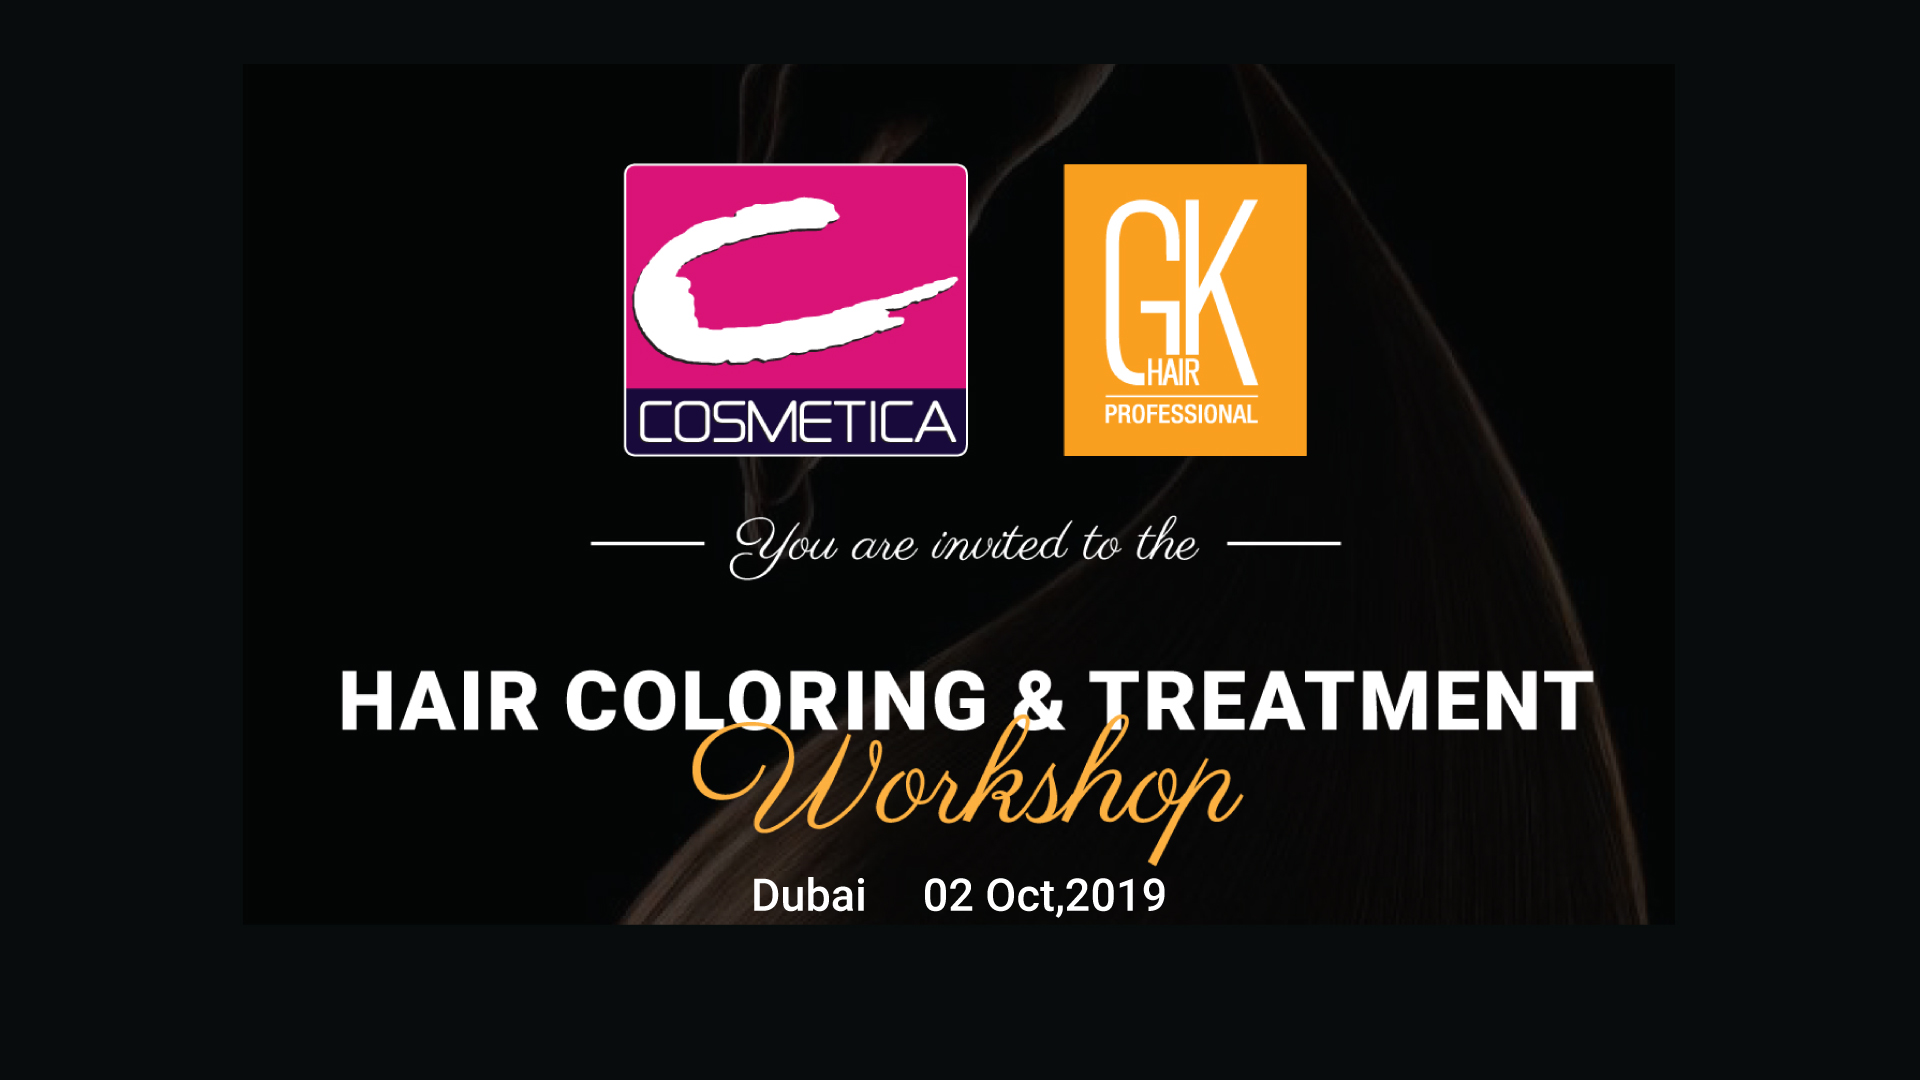 COSMETICA AND GKhair Hair Coloring & Treatment Workshop Dubai 2019